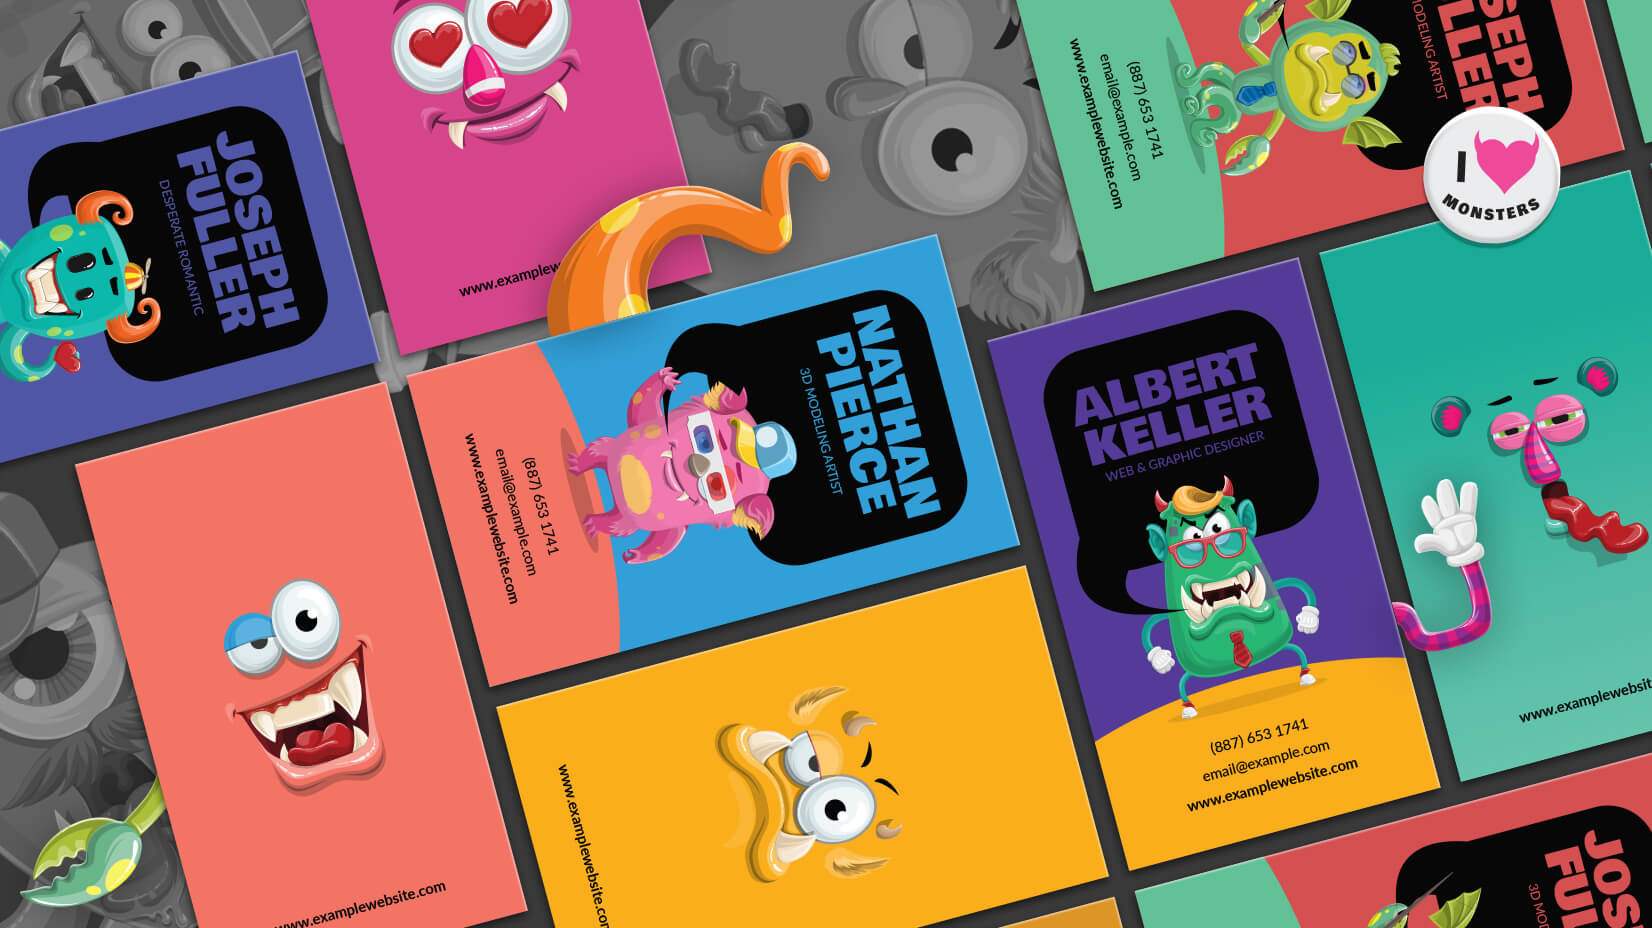 Monster business card template in illustrator tutorial freebie cheaphphosting Image collections